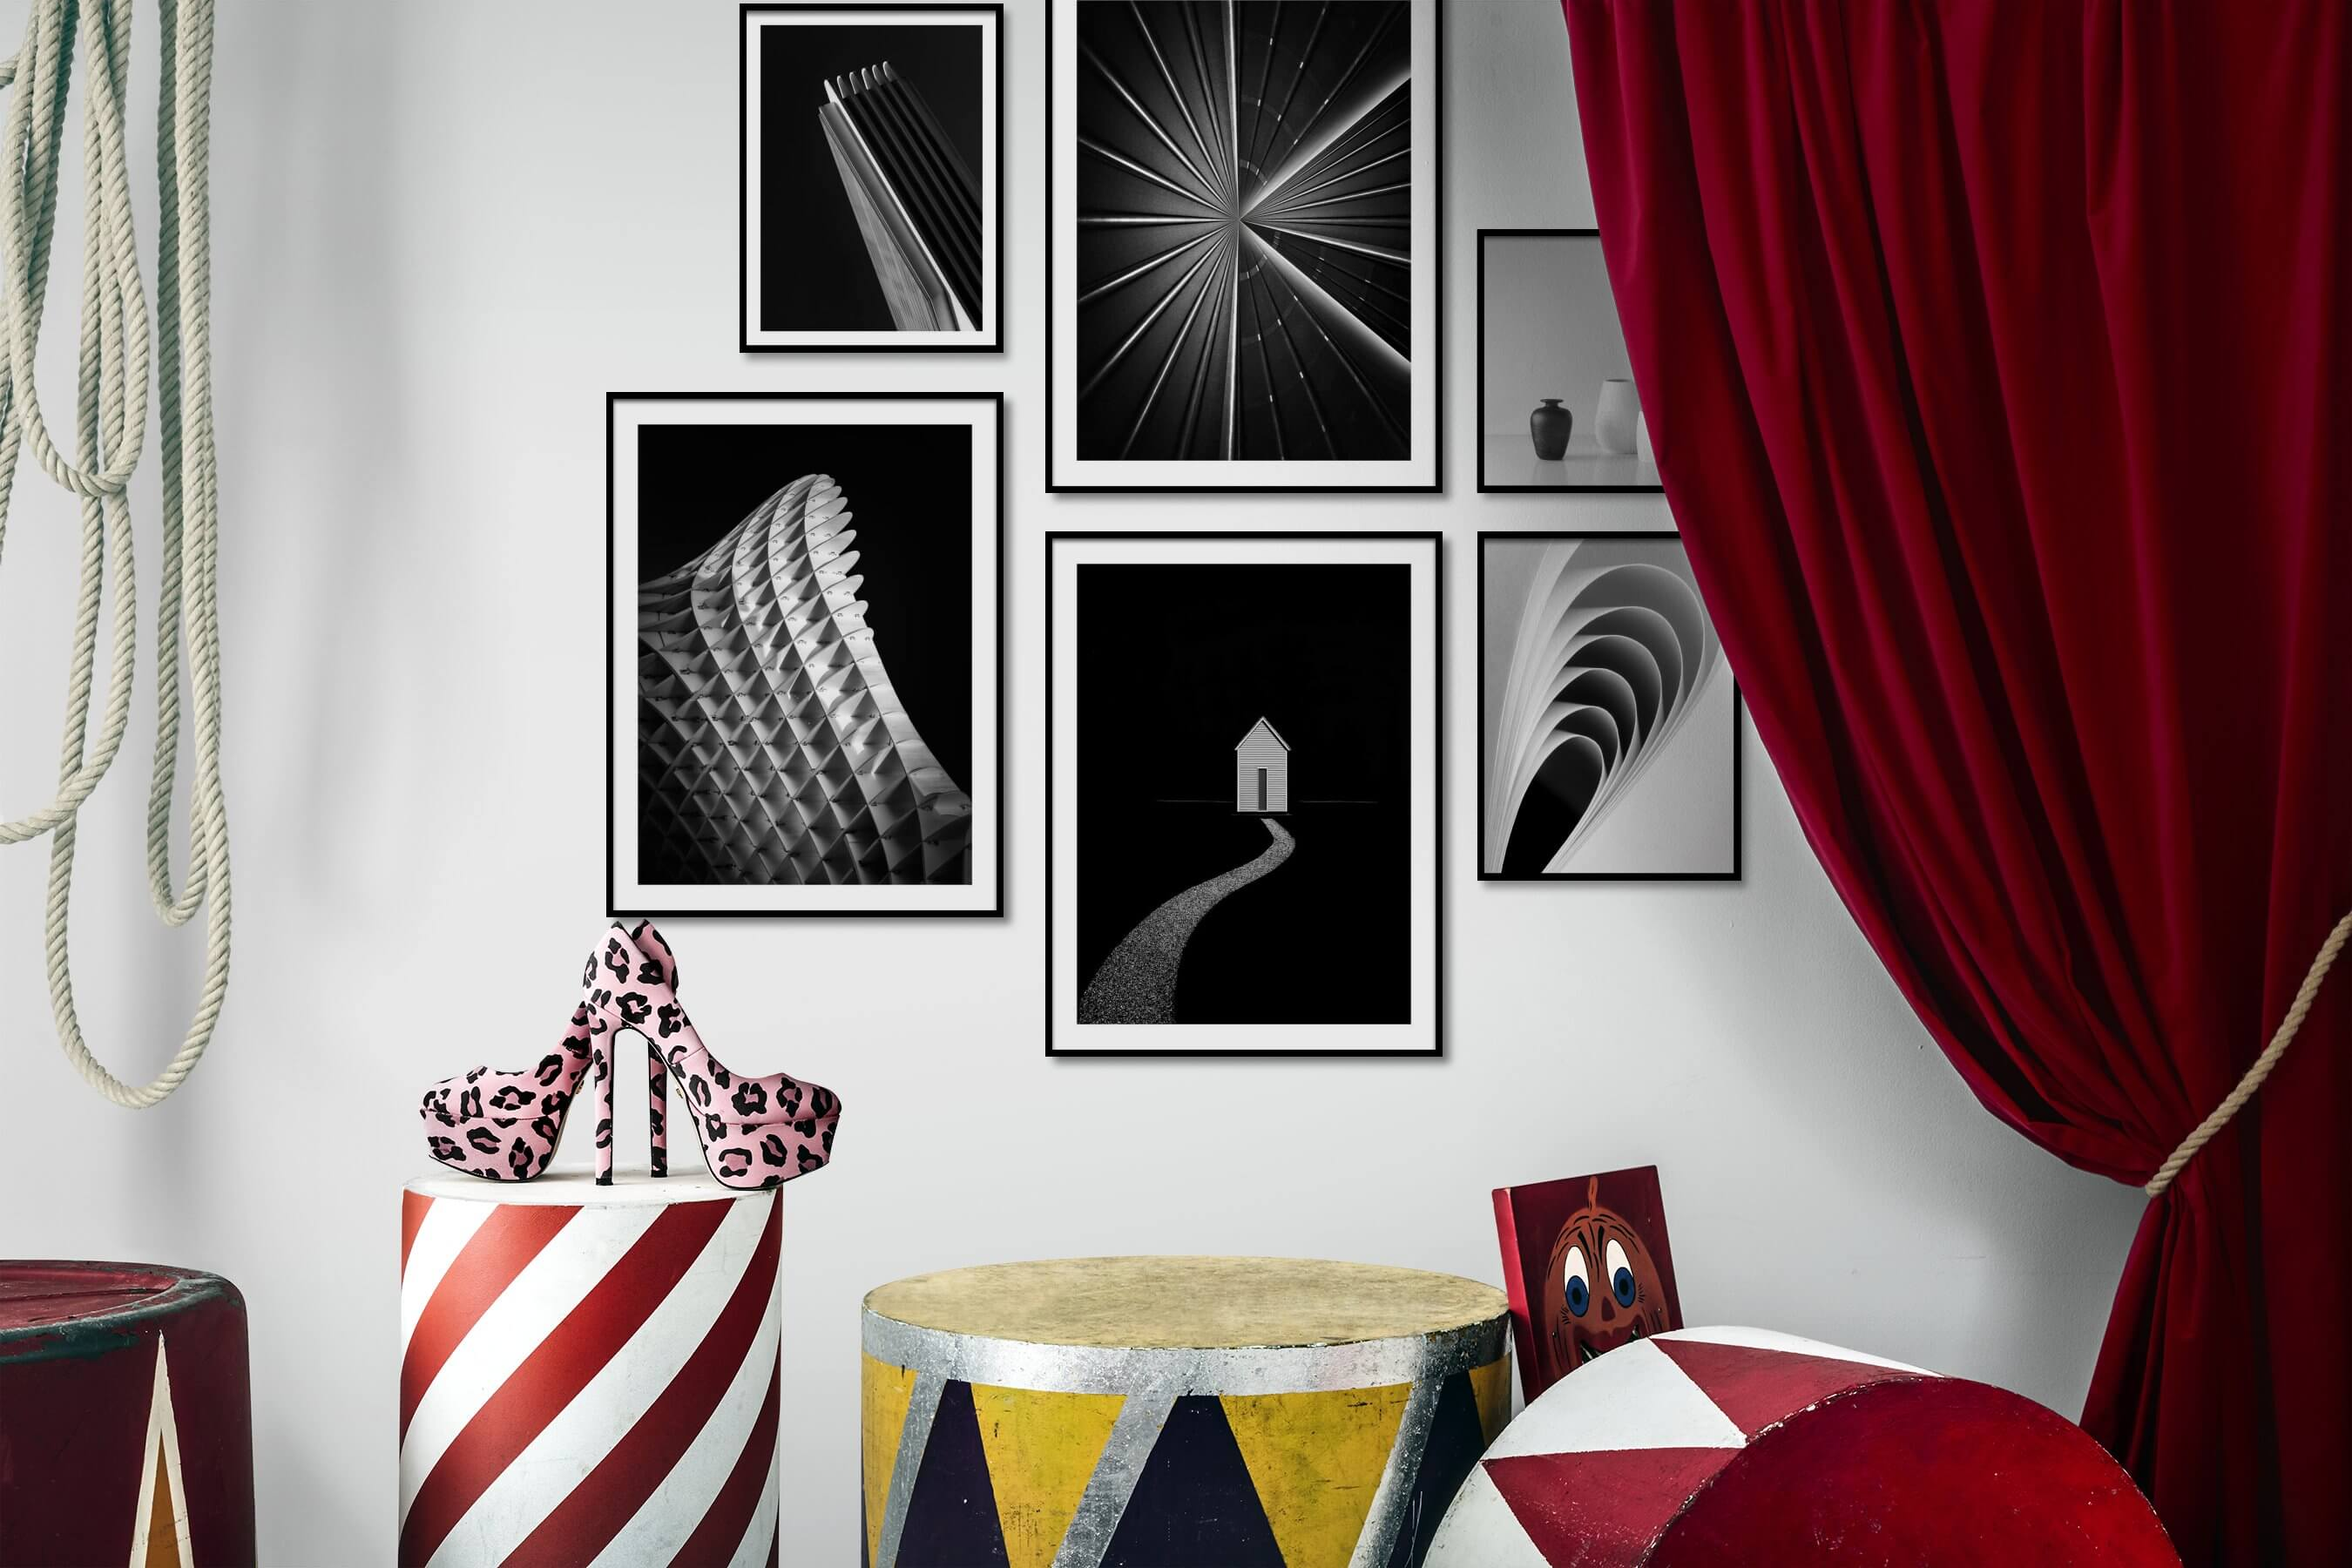 Gallery wall idea with six framed pictures arranged on a wall depicting Black & White, For the Minimalist, For the Maximalist, Flowers & Plants, and For the Moderate